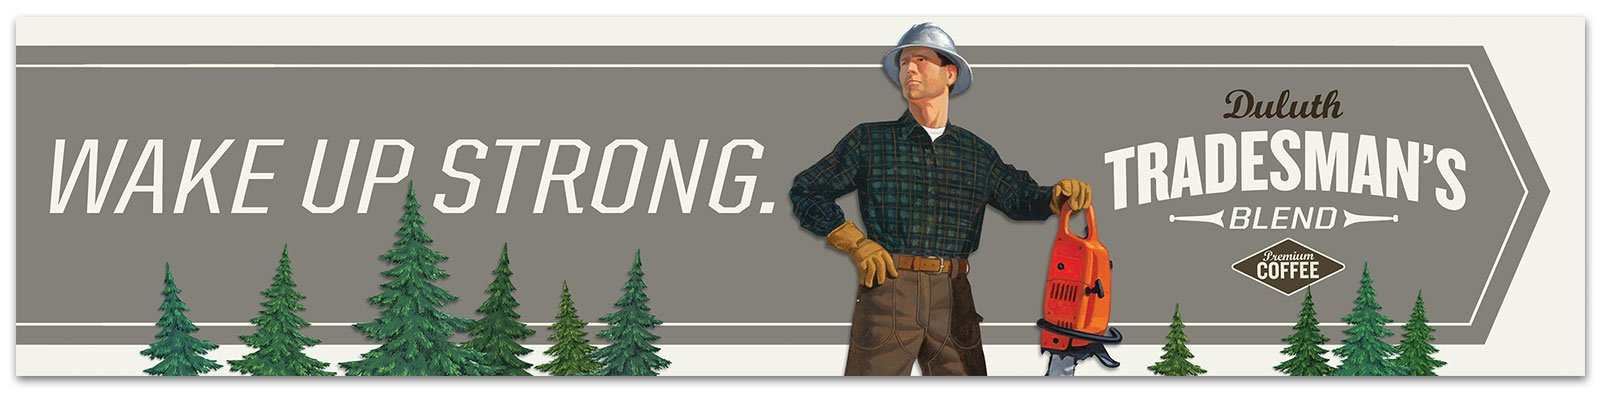 Illustration and design depicting a lumberjack leaning on chainsaw, amongst pine trees, and used as a sign for Duluth Trading Co.'s Duluth Tradesman's Blend coffee. Design by Michael Kerwin; trandsman illustration by Duluth Trading Co.